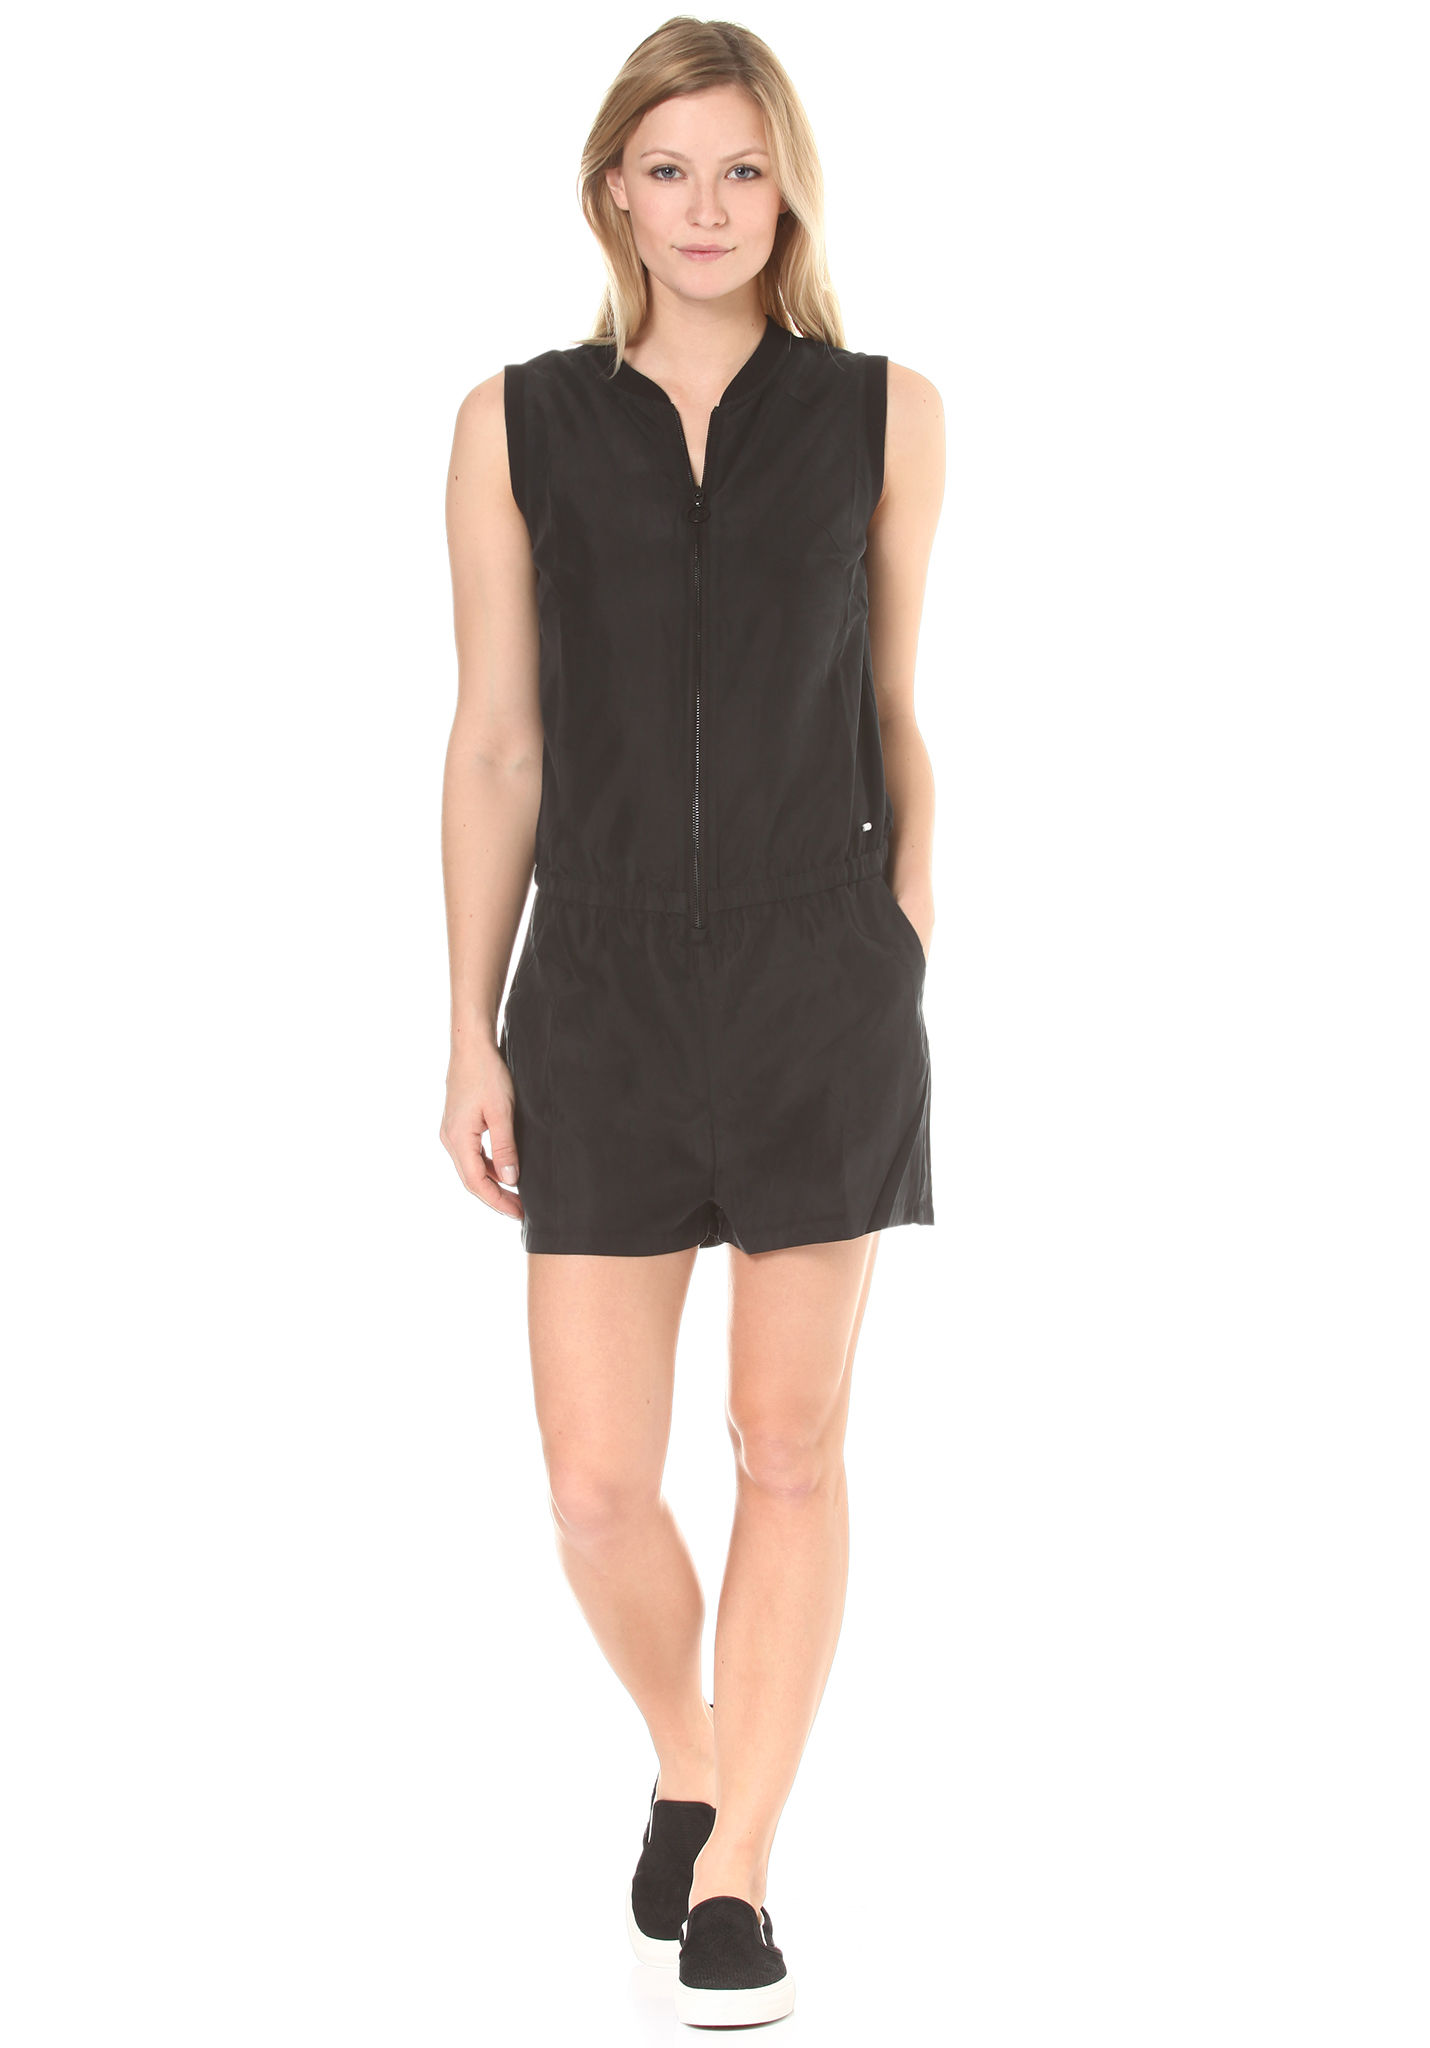 Find great deals on eBay for short black jumpsuit. Shop with confidence.